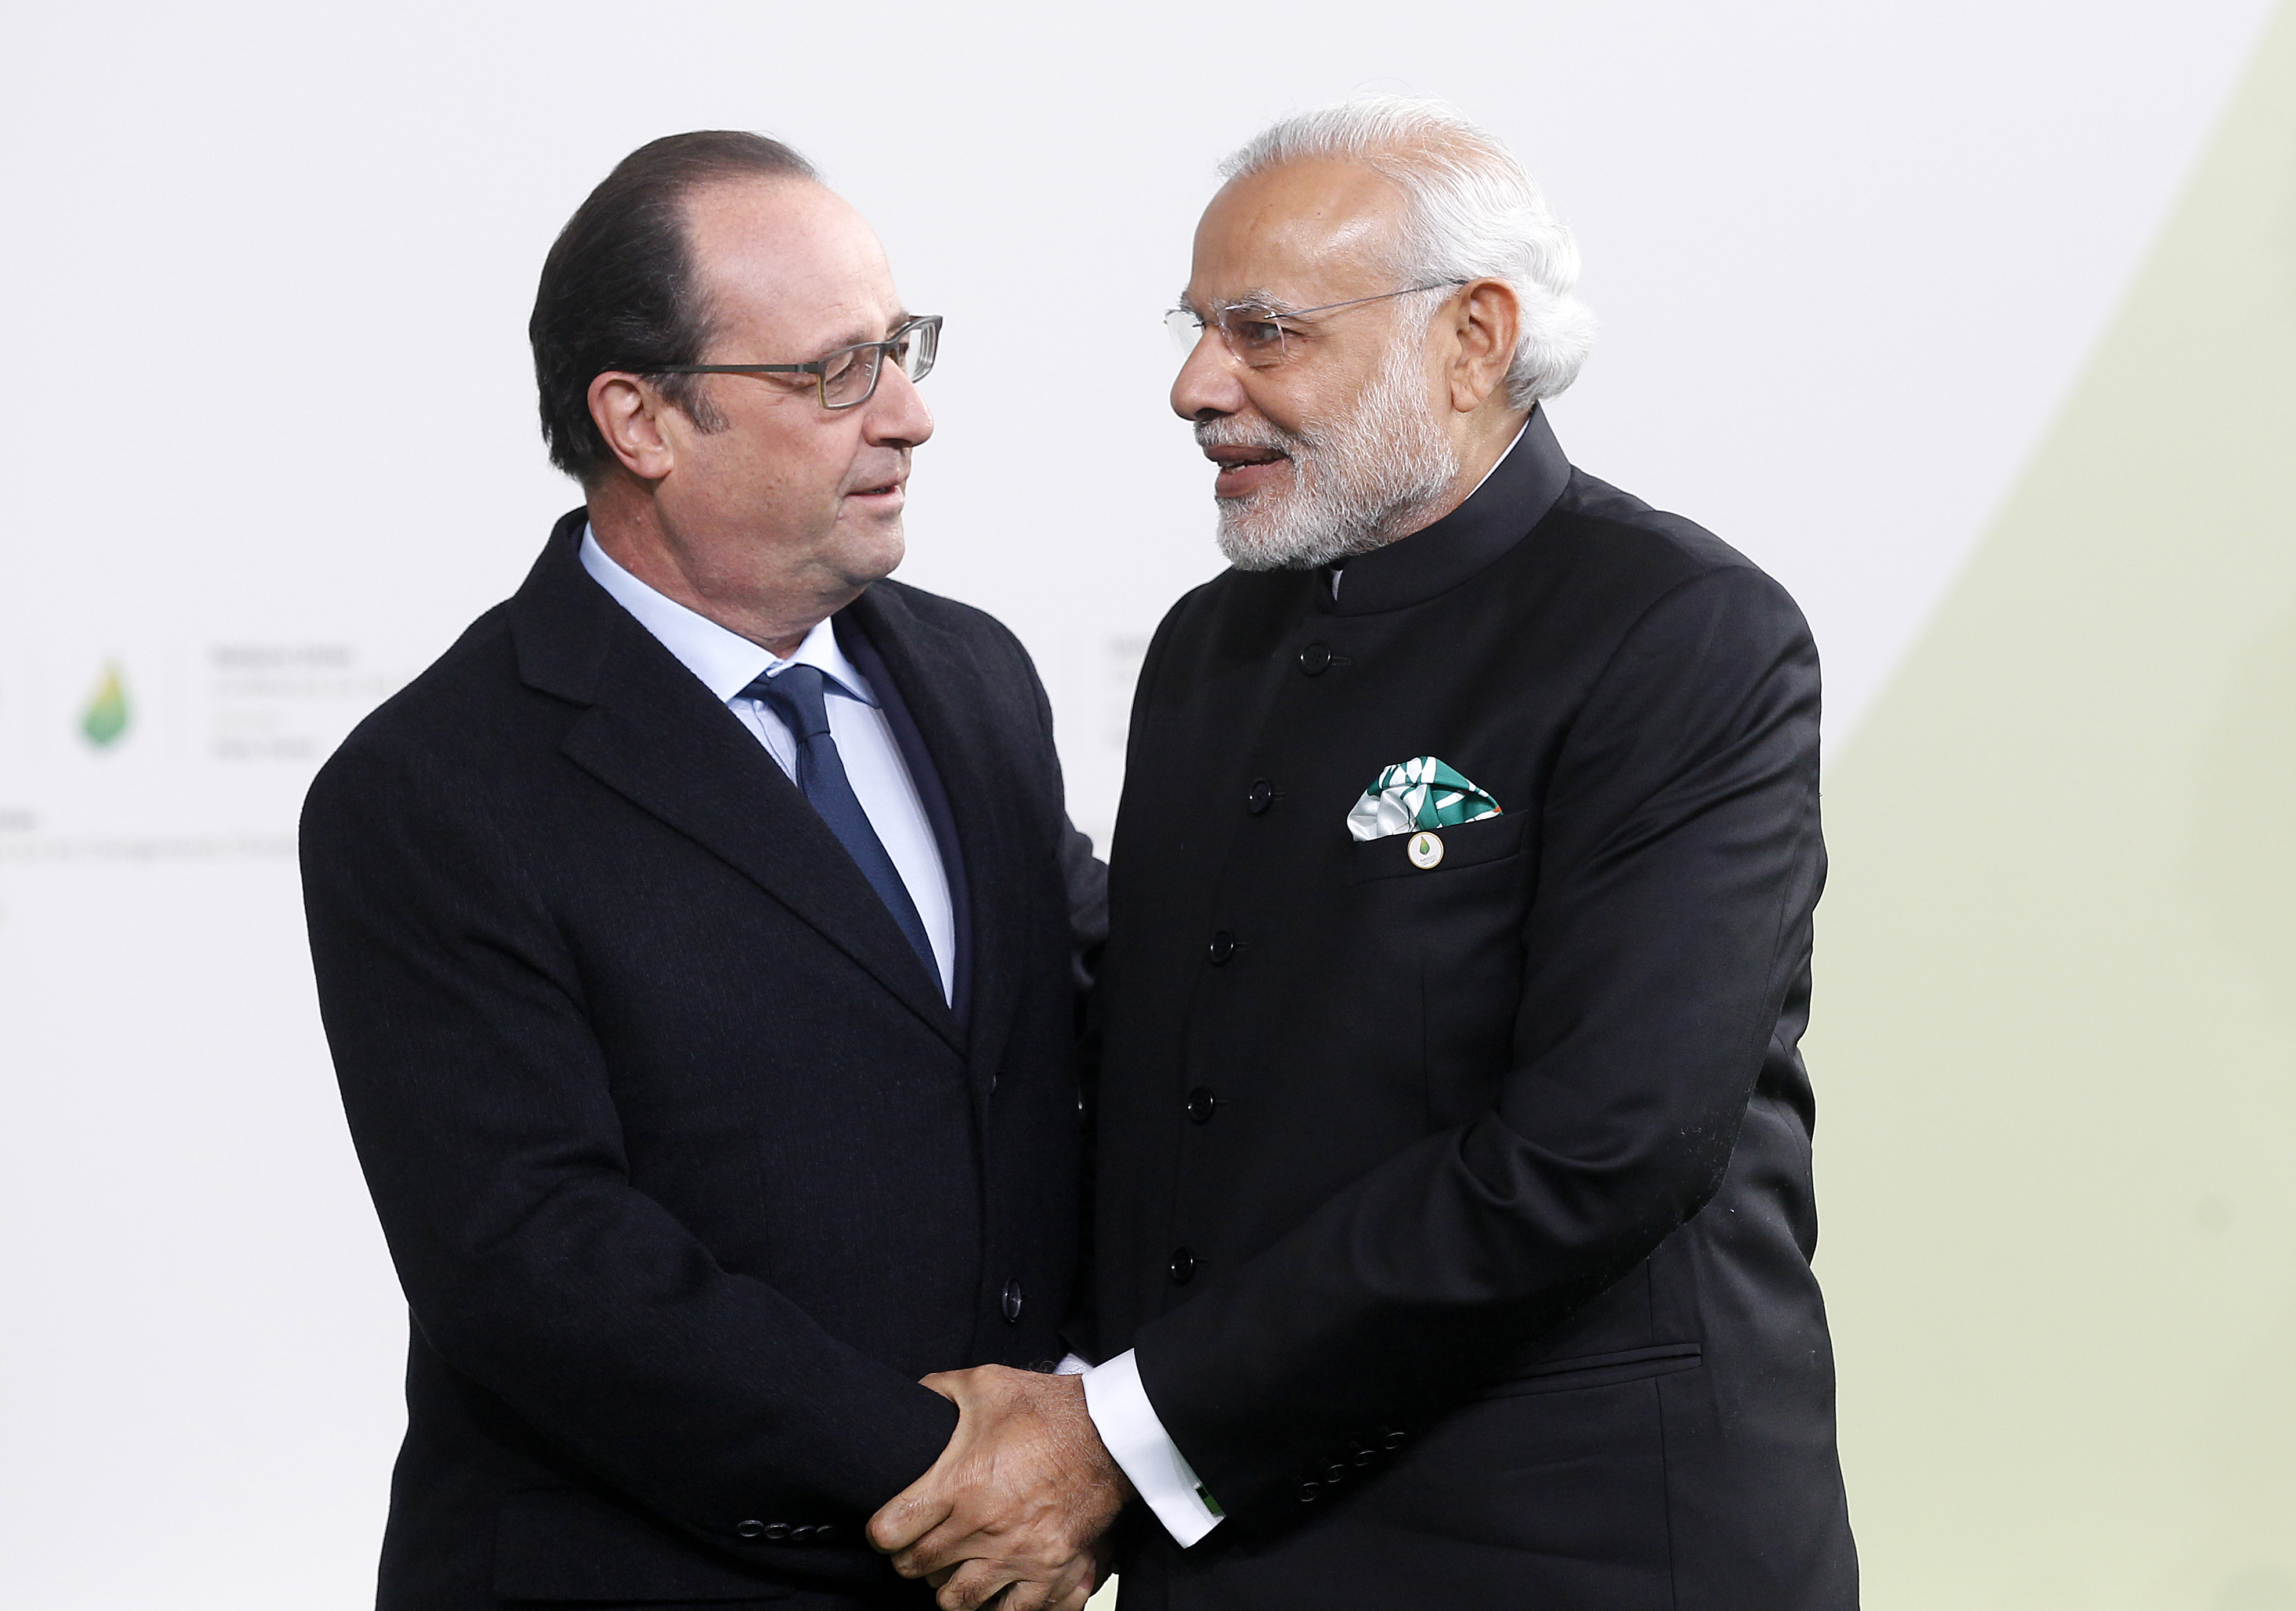 Francois Hollande shakes hands with Narendra Modi (R) as he arrives for the COP21 on Nov. 30, 2015 in Le Bourget, France.